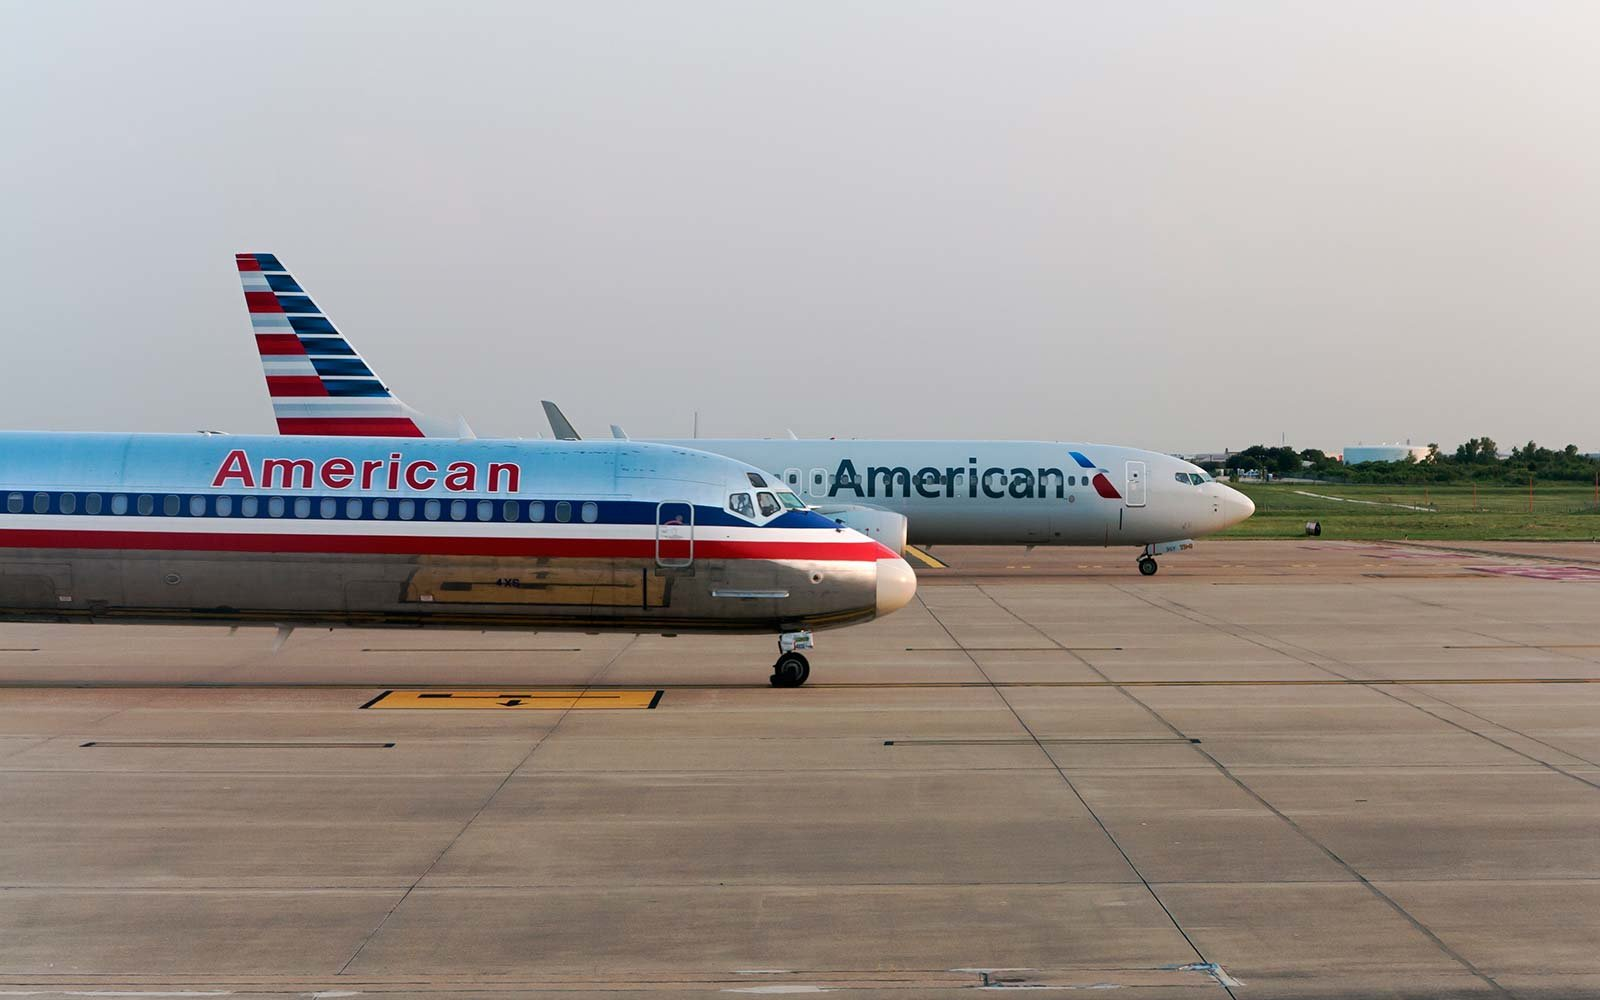 American Airlines Apologizes for Kicking 2 Basketball